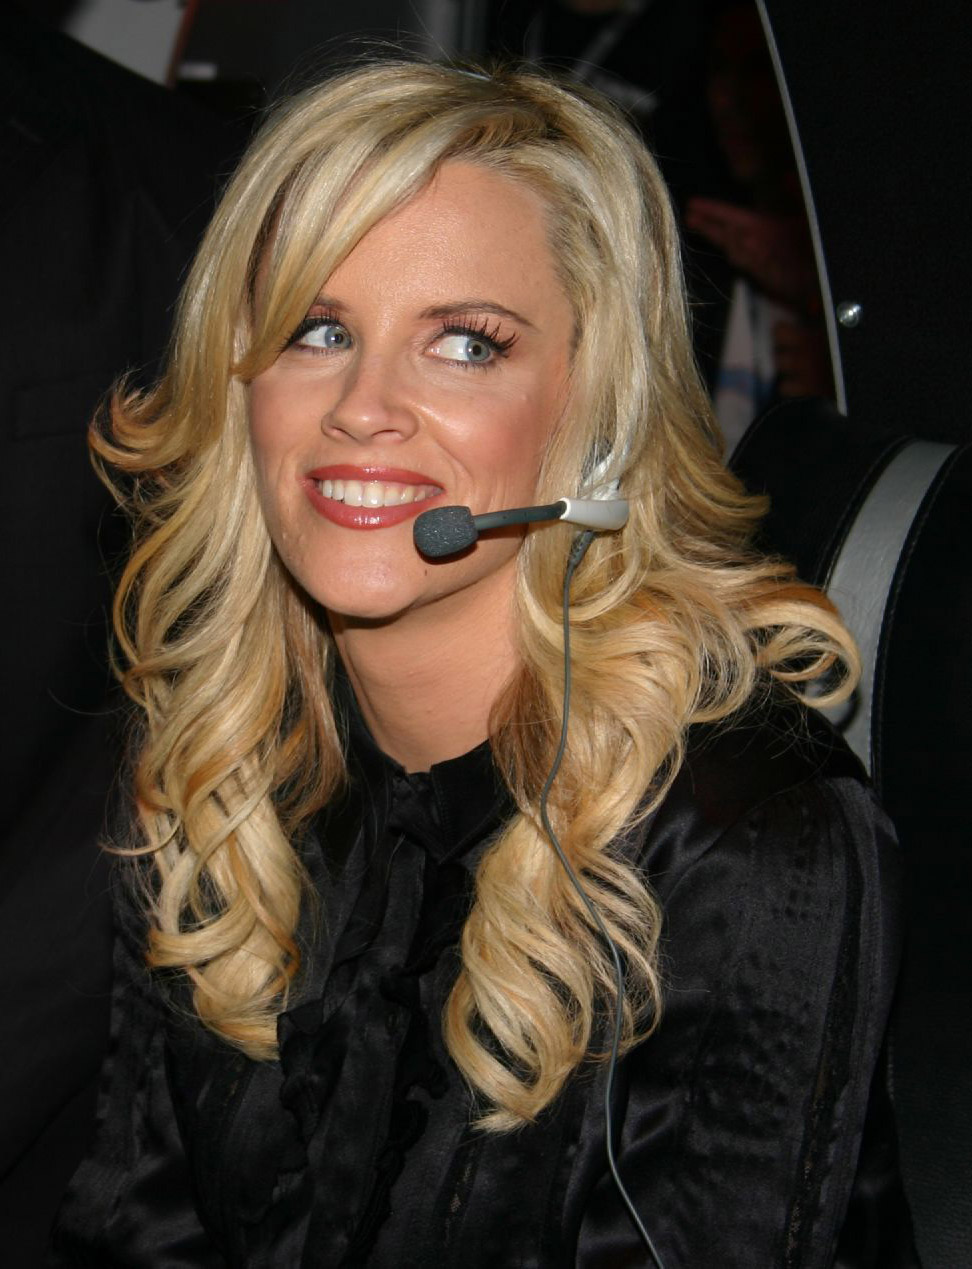 Jenny McCarthy - Simple English Wikipedia, the free encyclopedia